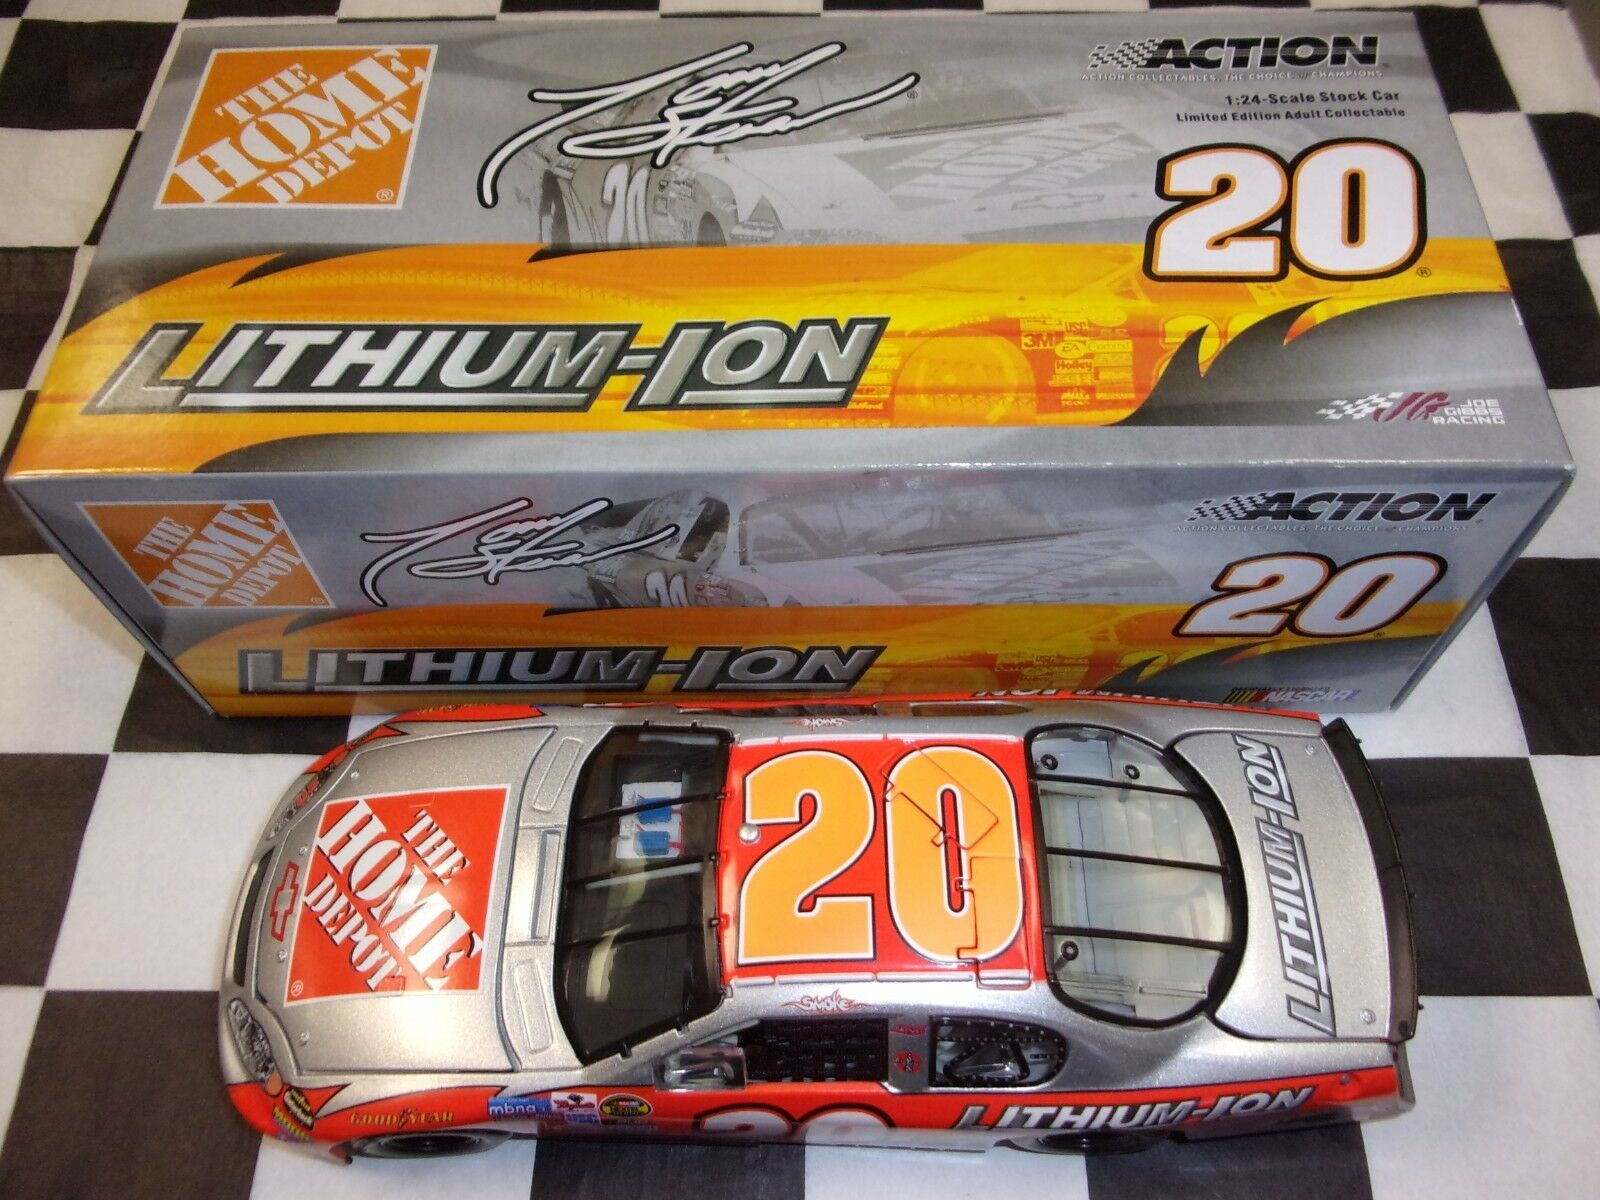 Tony Stewart  20 Home Depot Lithium-Ion 2005 Monte NASCAR Action 1:24 scale car